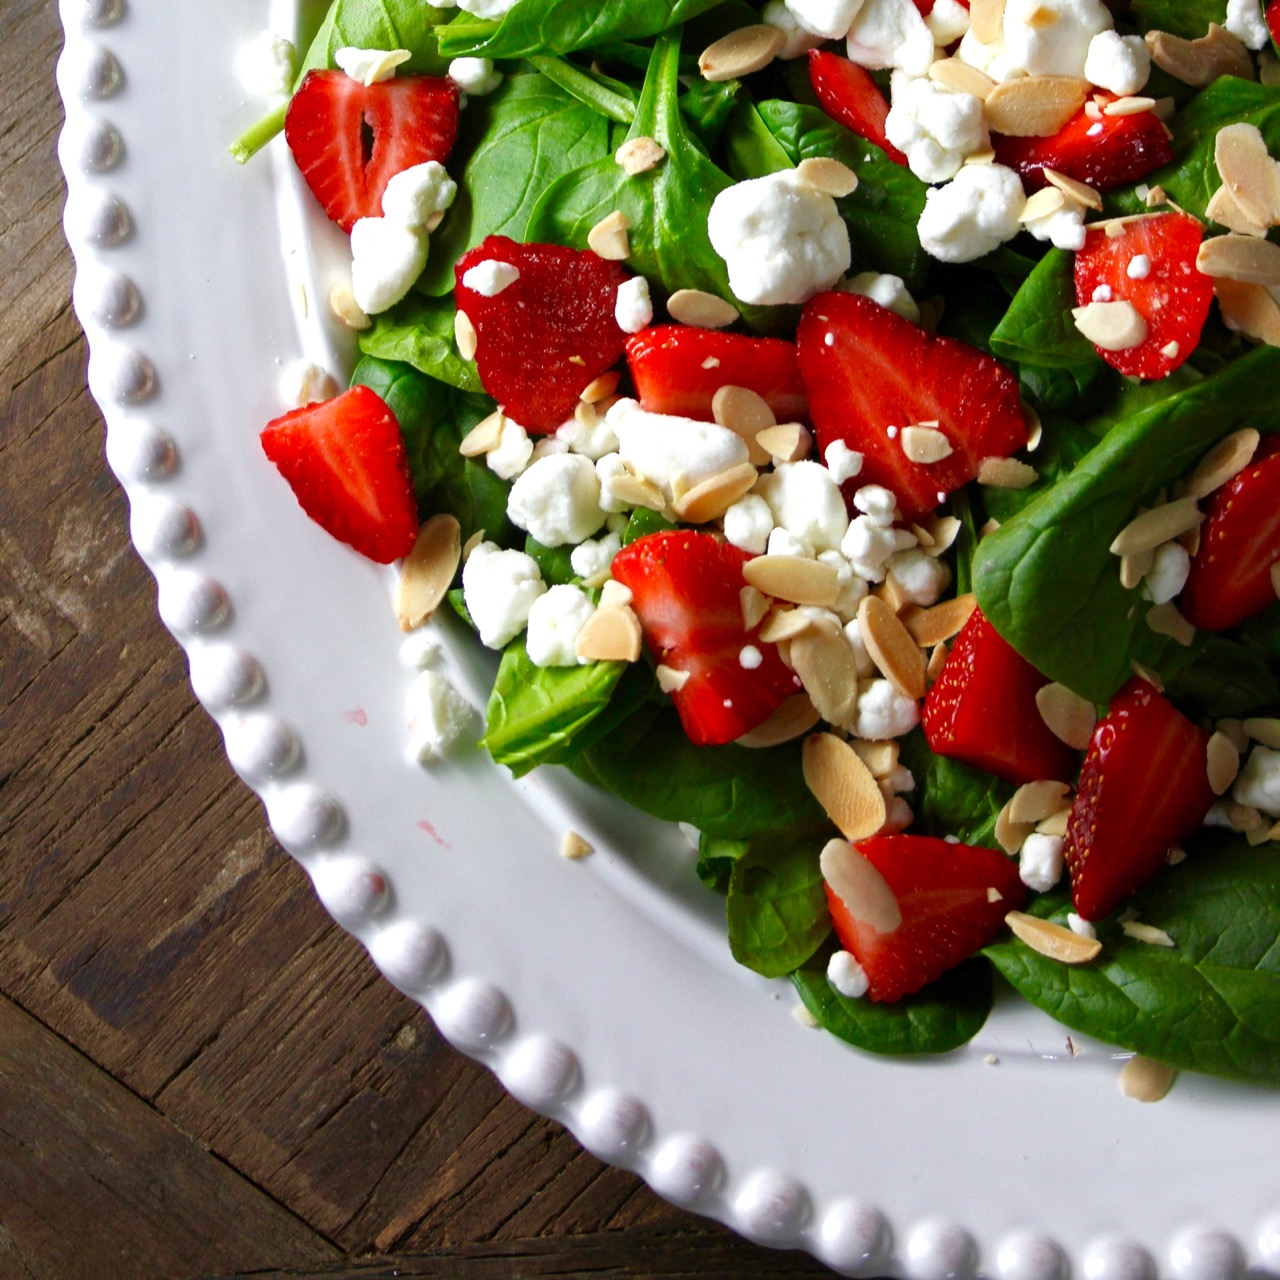 Spinach Salad with Strawberries, Almonds and Goat Cheese